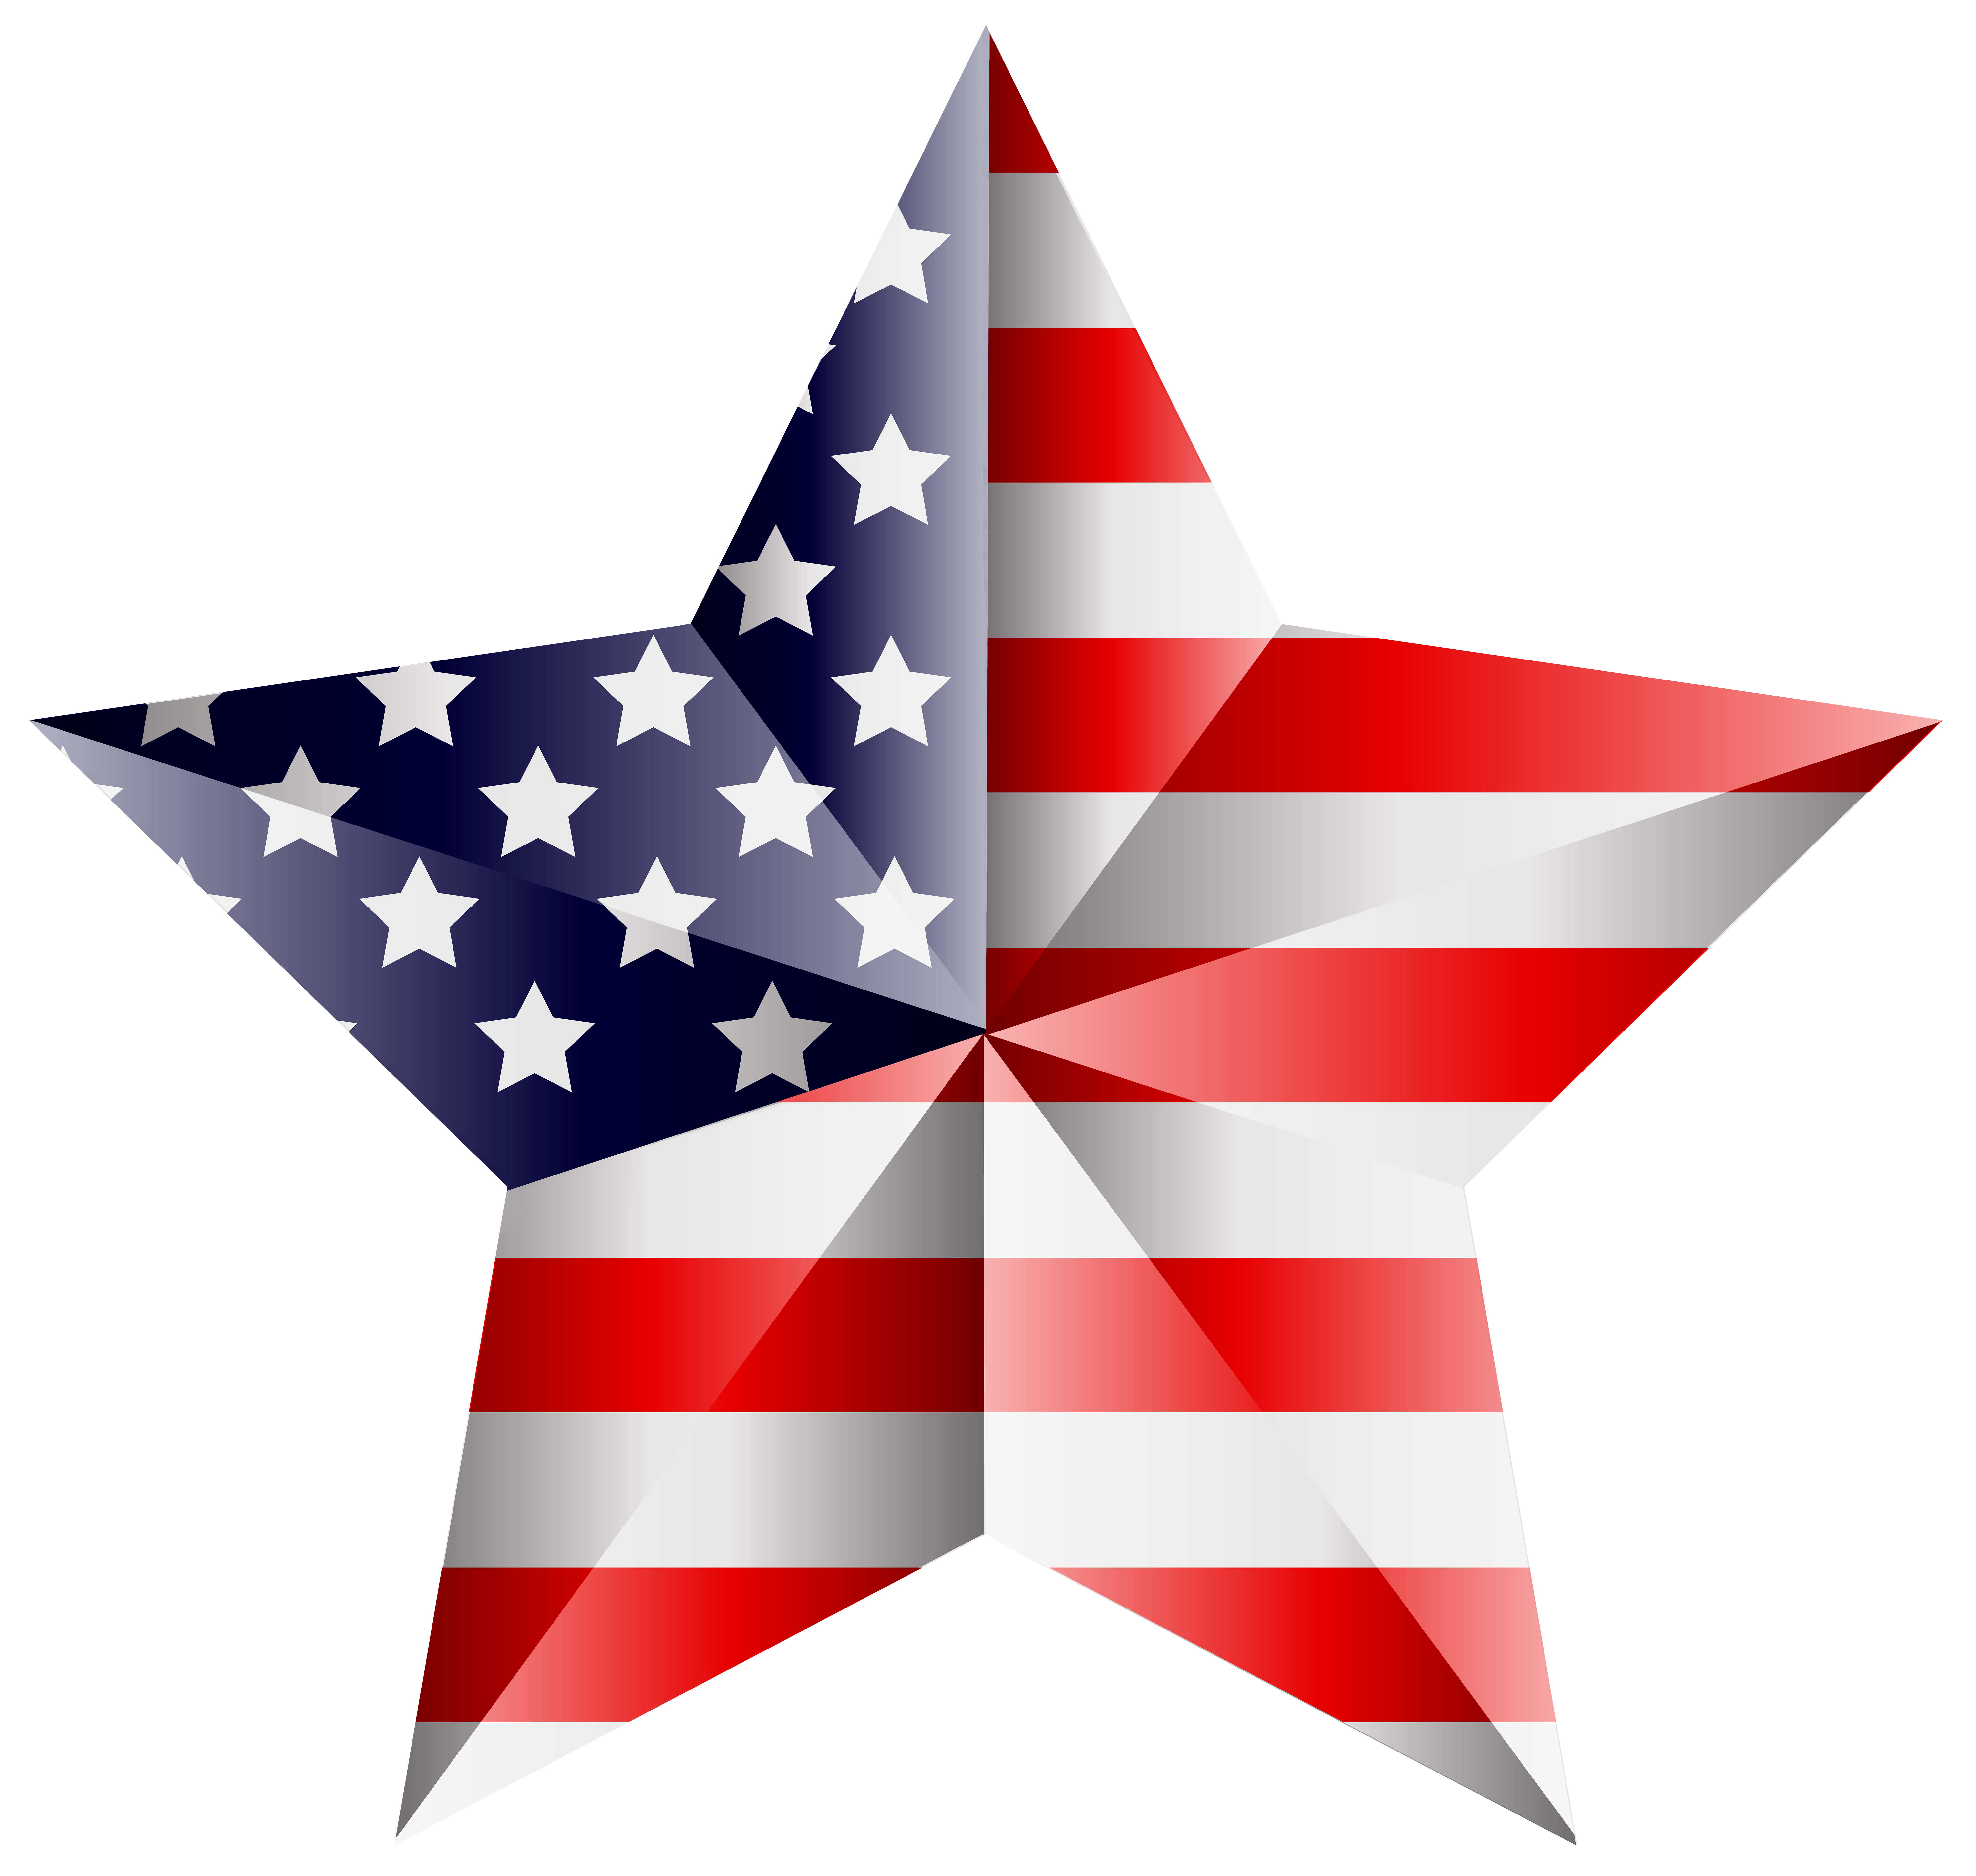 Clipart bow flag american. Star transparent png clip